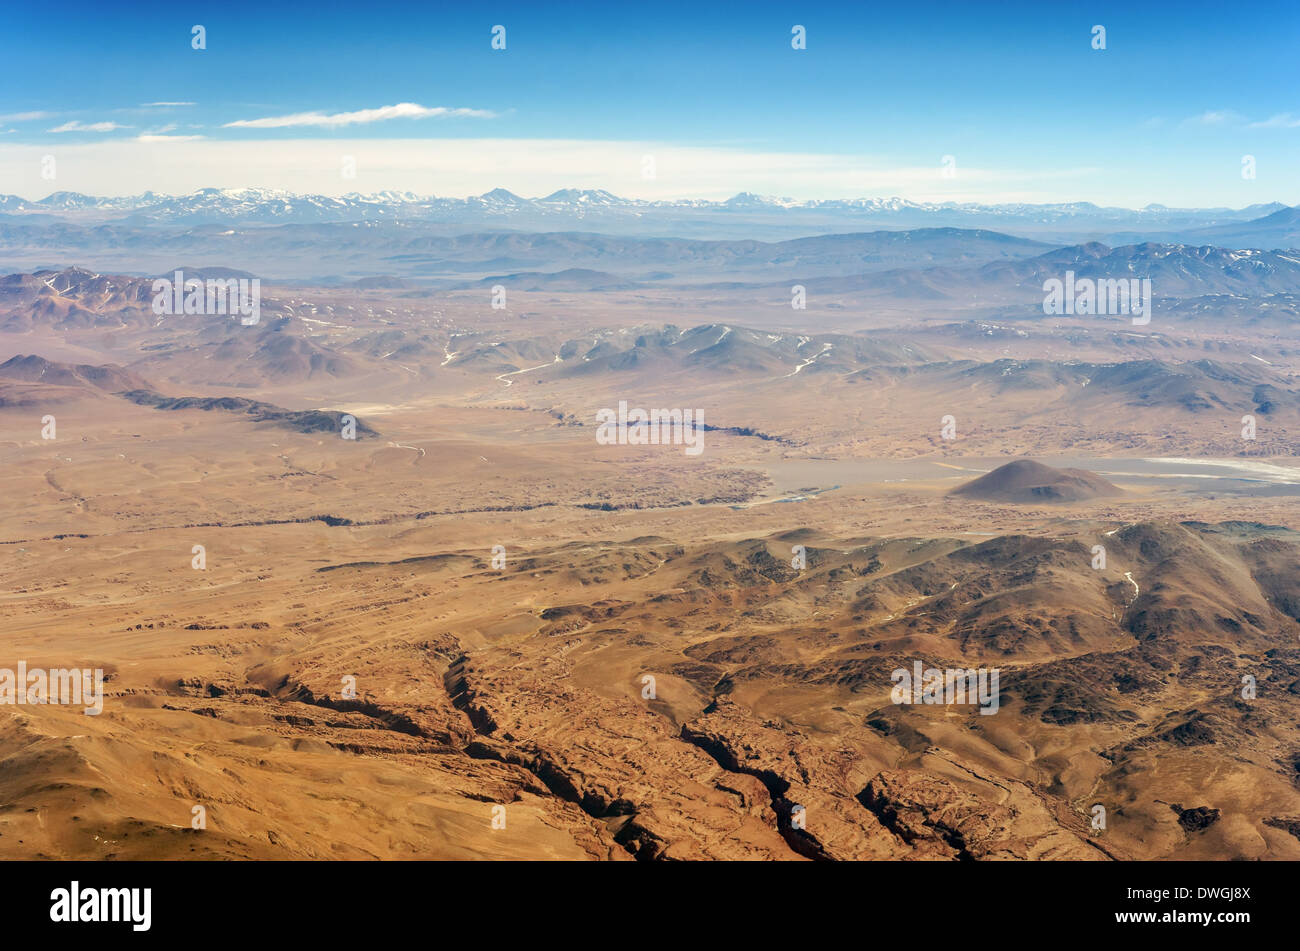 Aerial view of dry desert and the Andes Mountains somewhere over South America - Stock Image